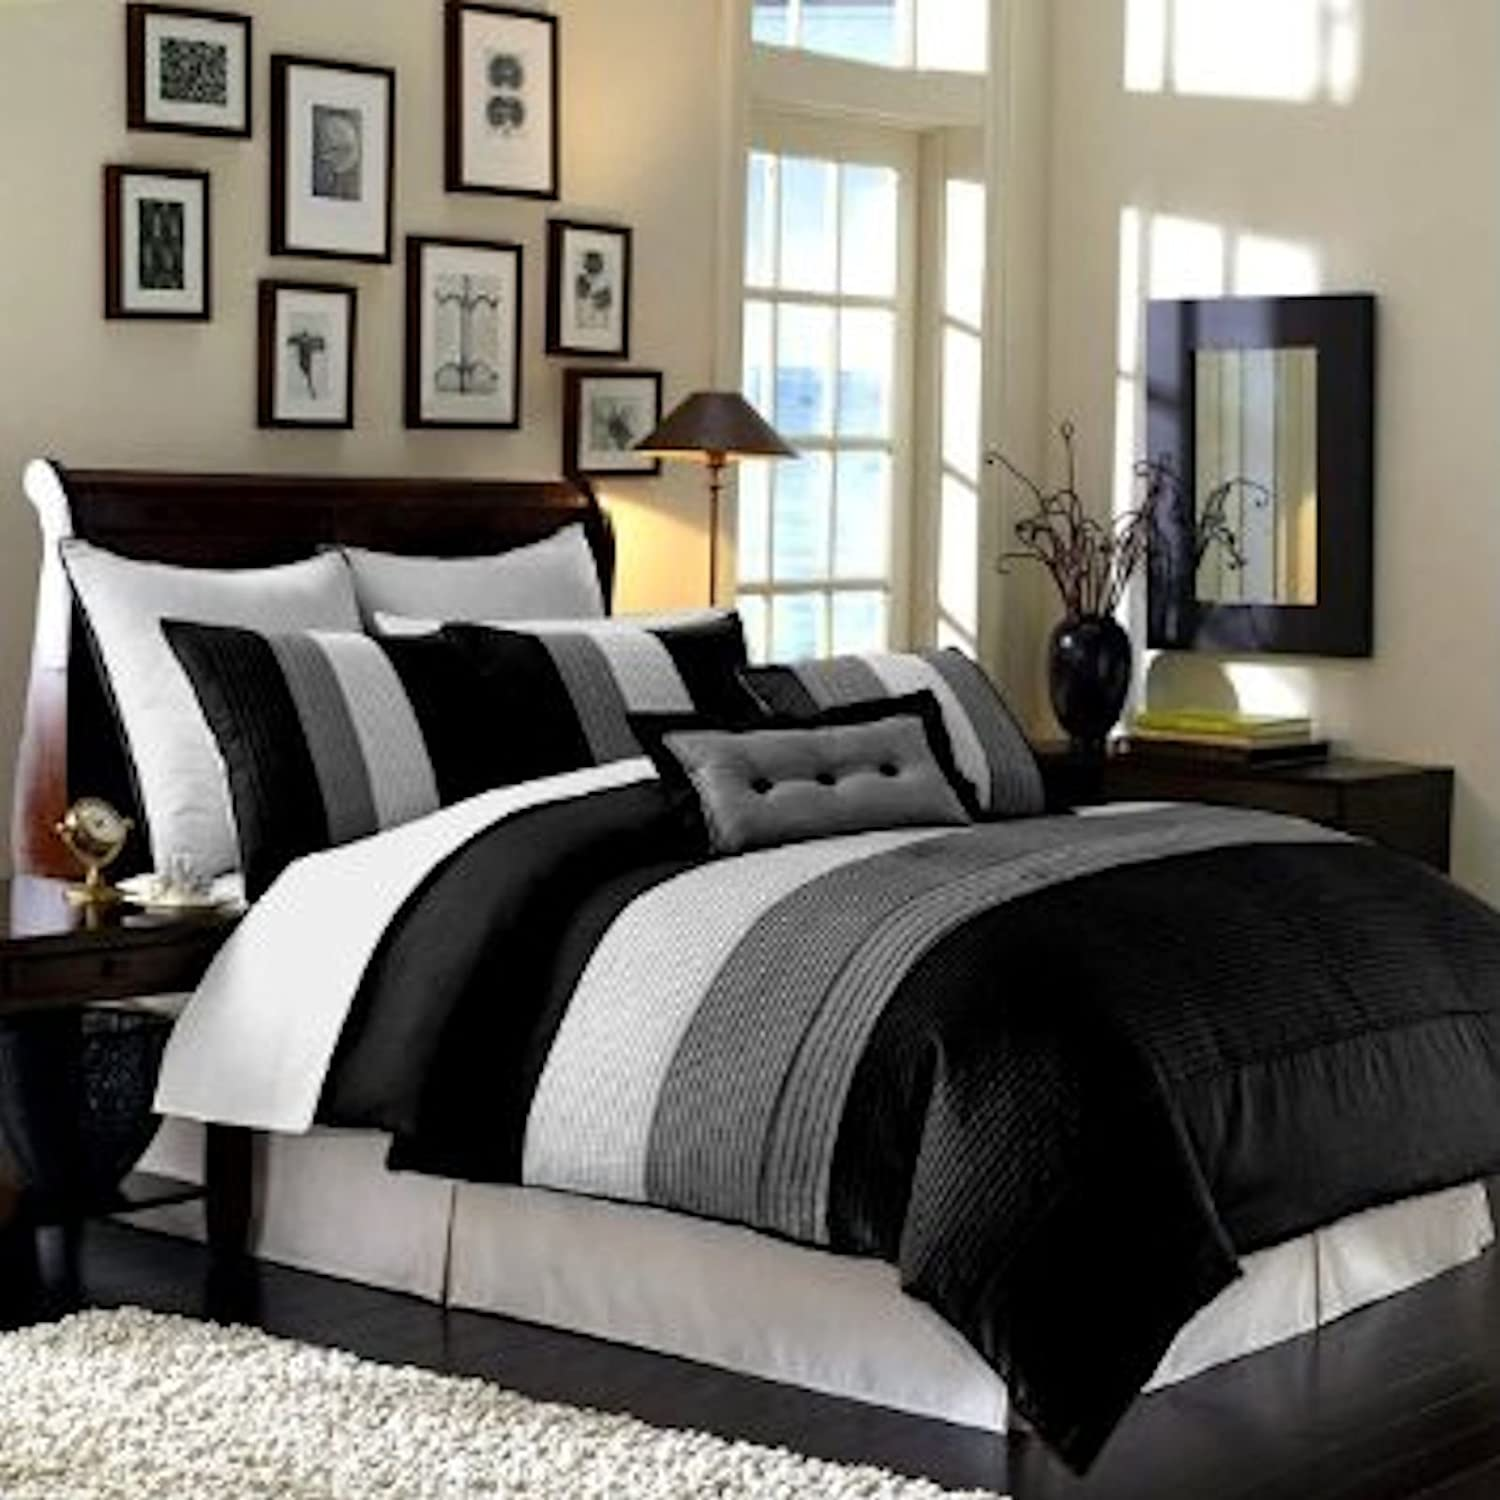 covers white for cover and red x duvet with king size sets com black astonishing dtavares